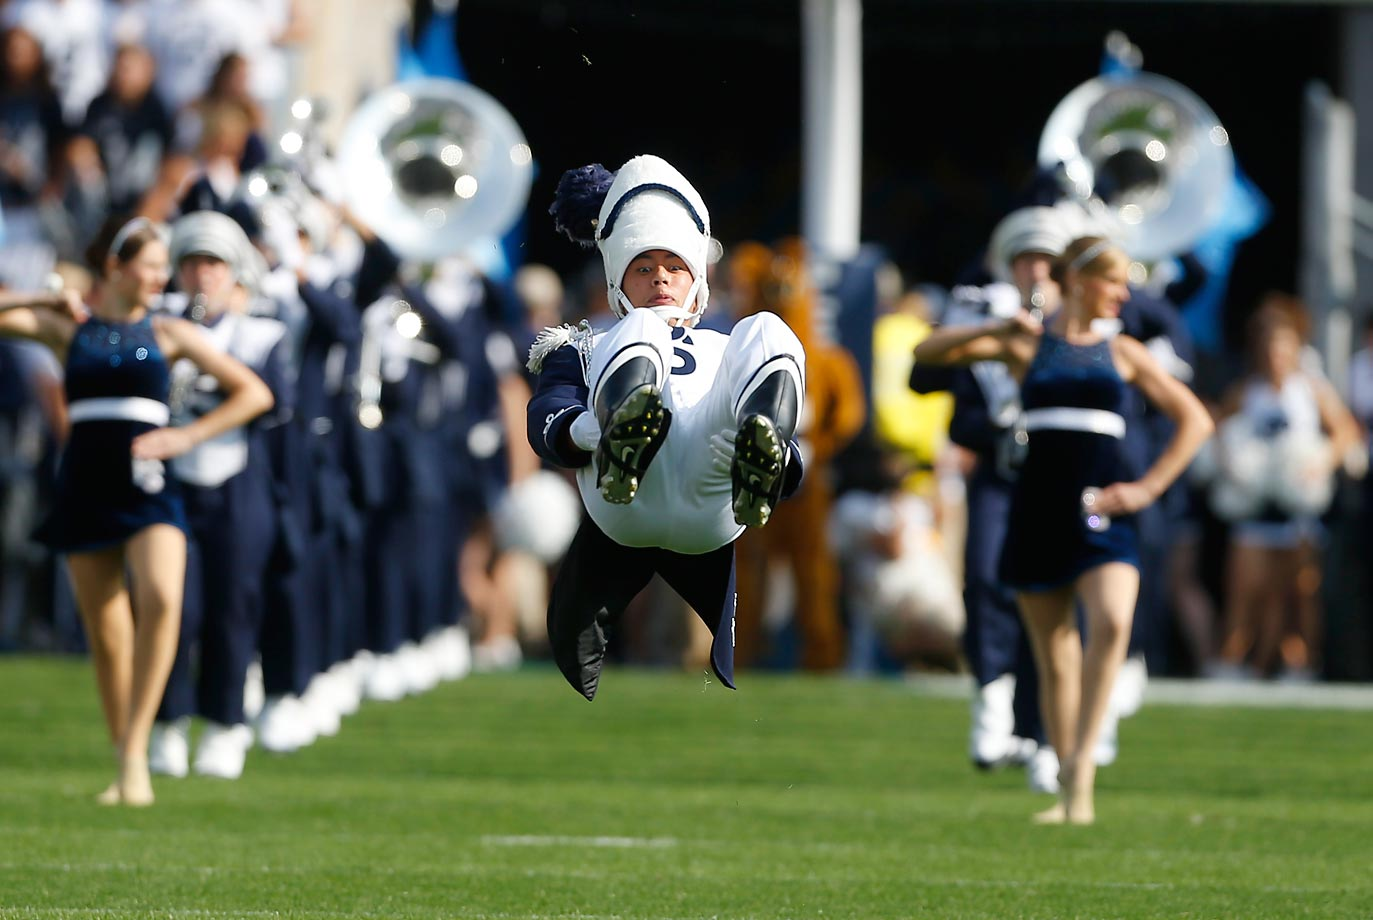 Drum Major Christopher Siergiej does a flip as he leads the Penn State marching band.